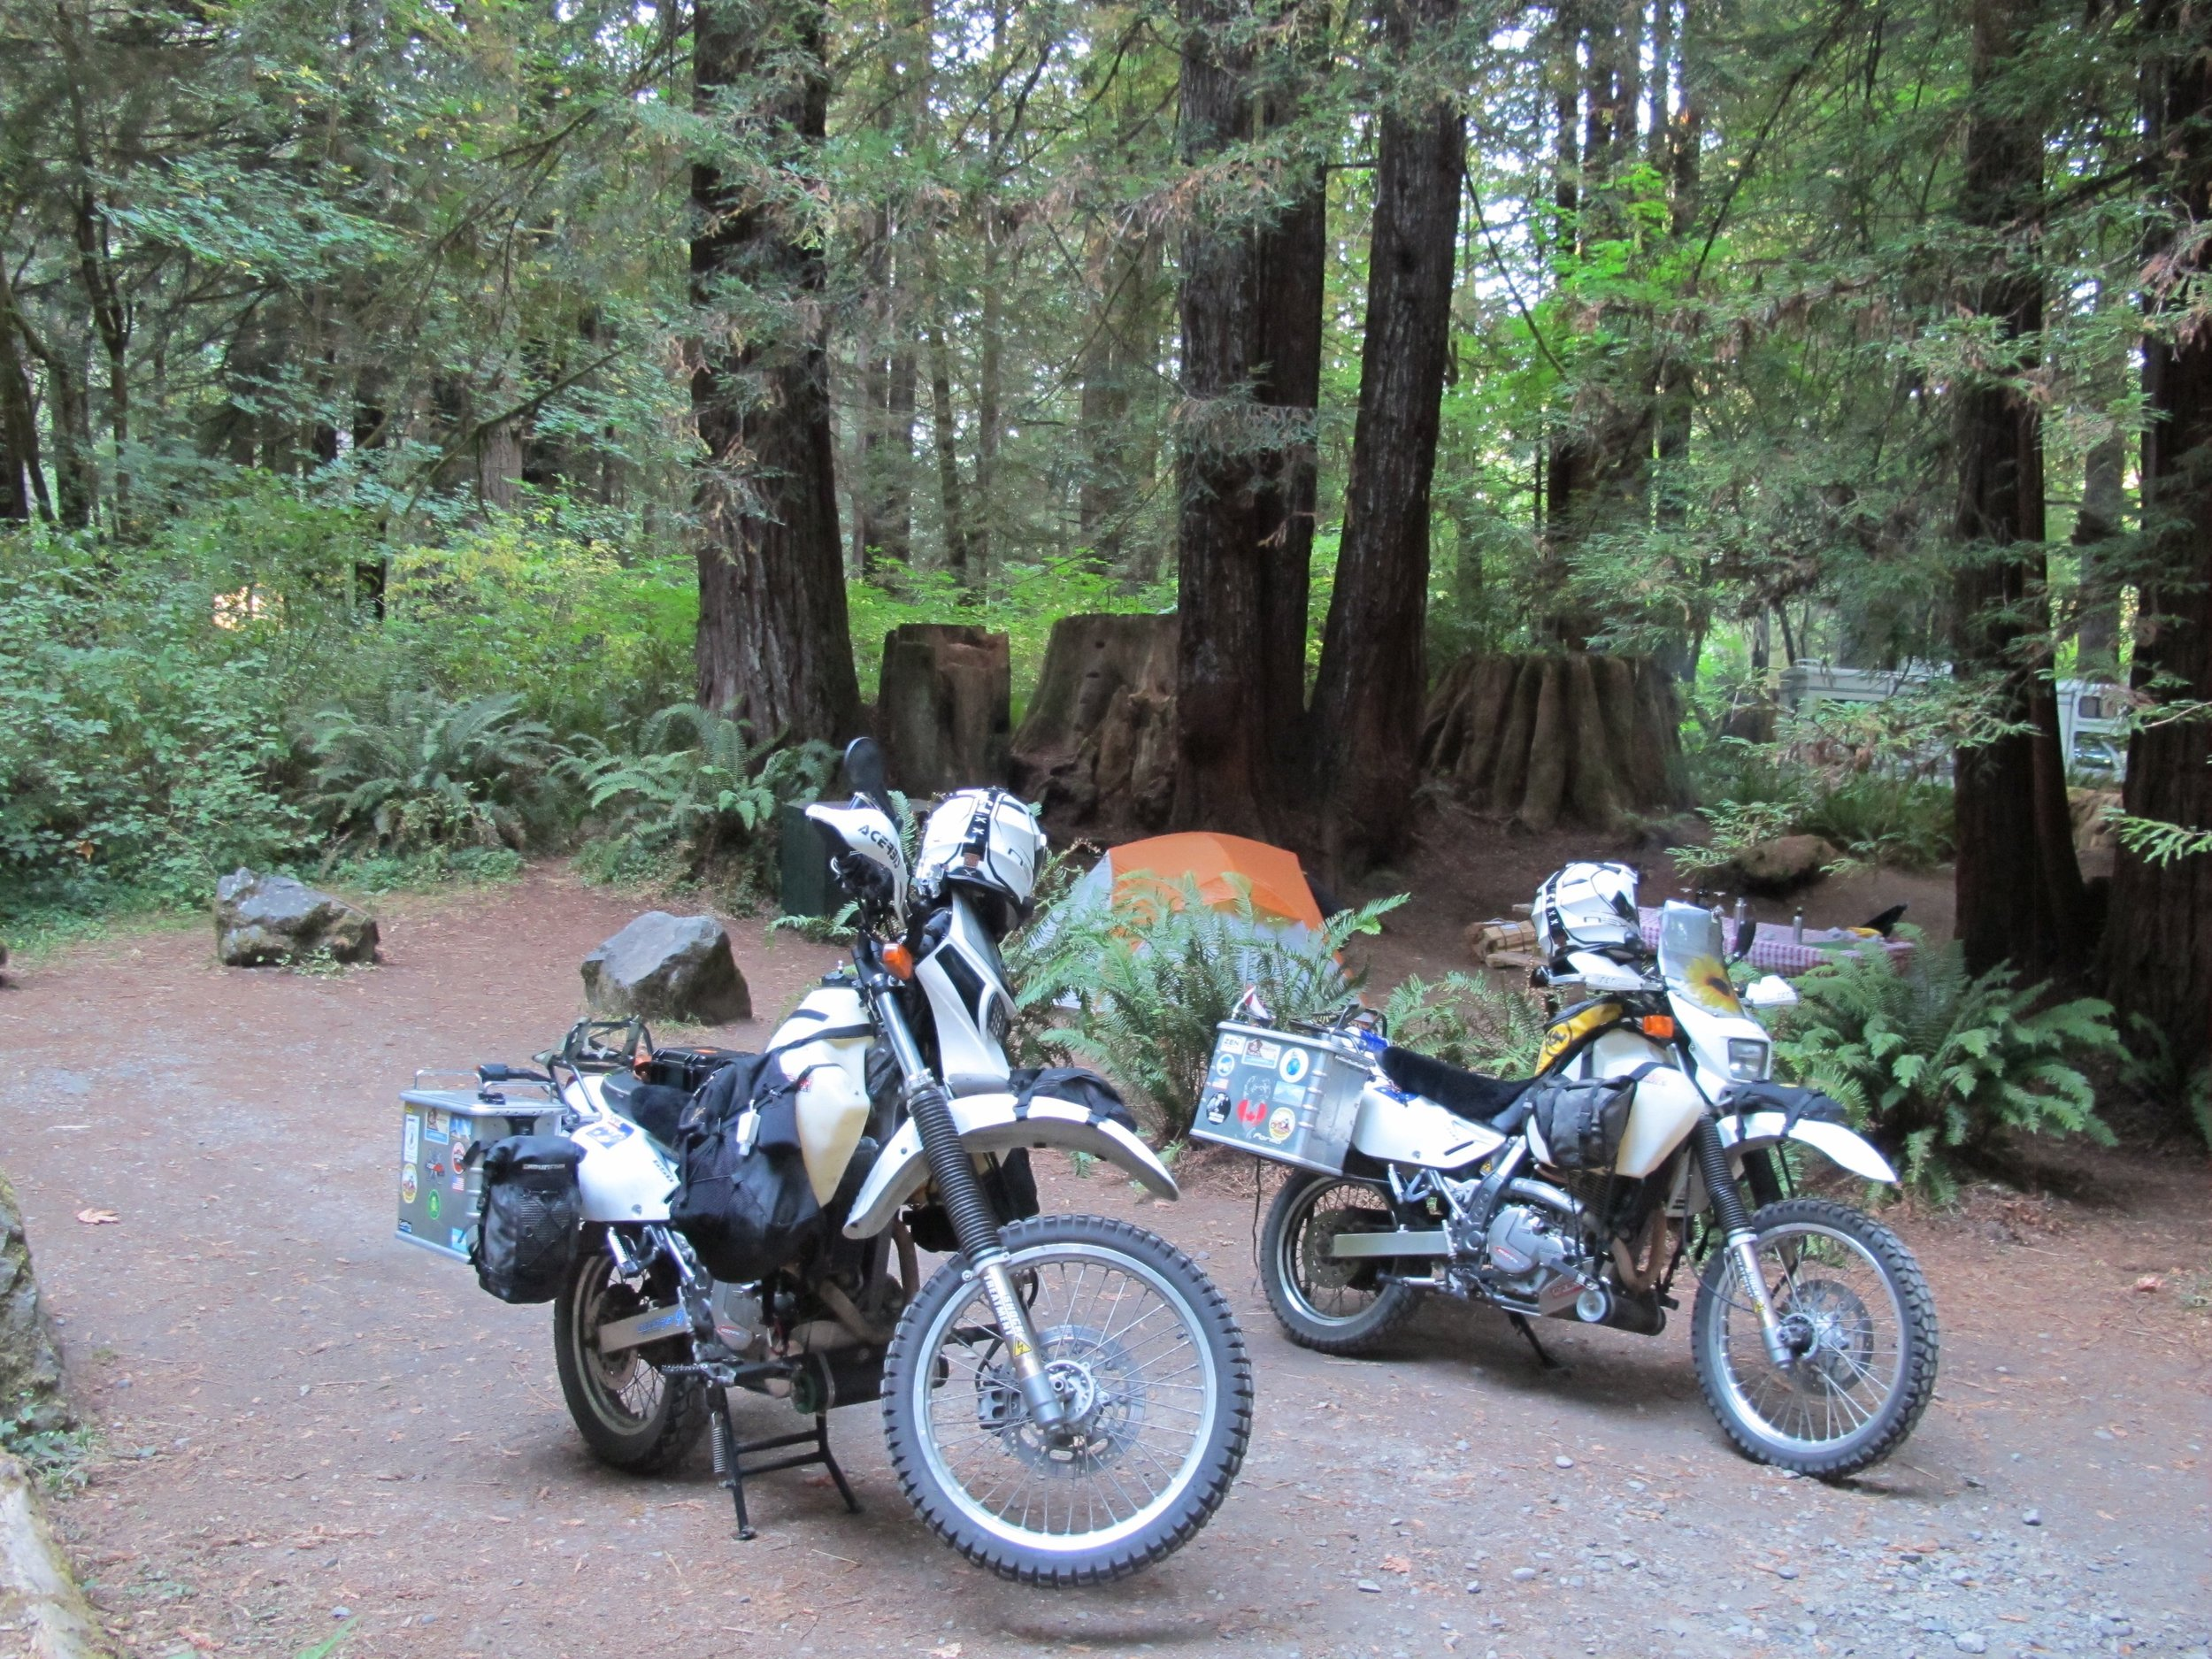 Camping amongst the Redwoods.